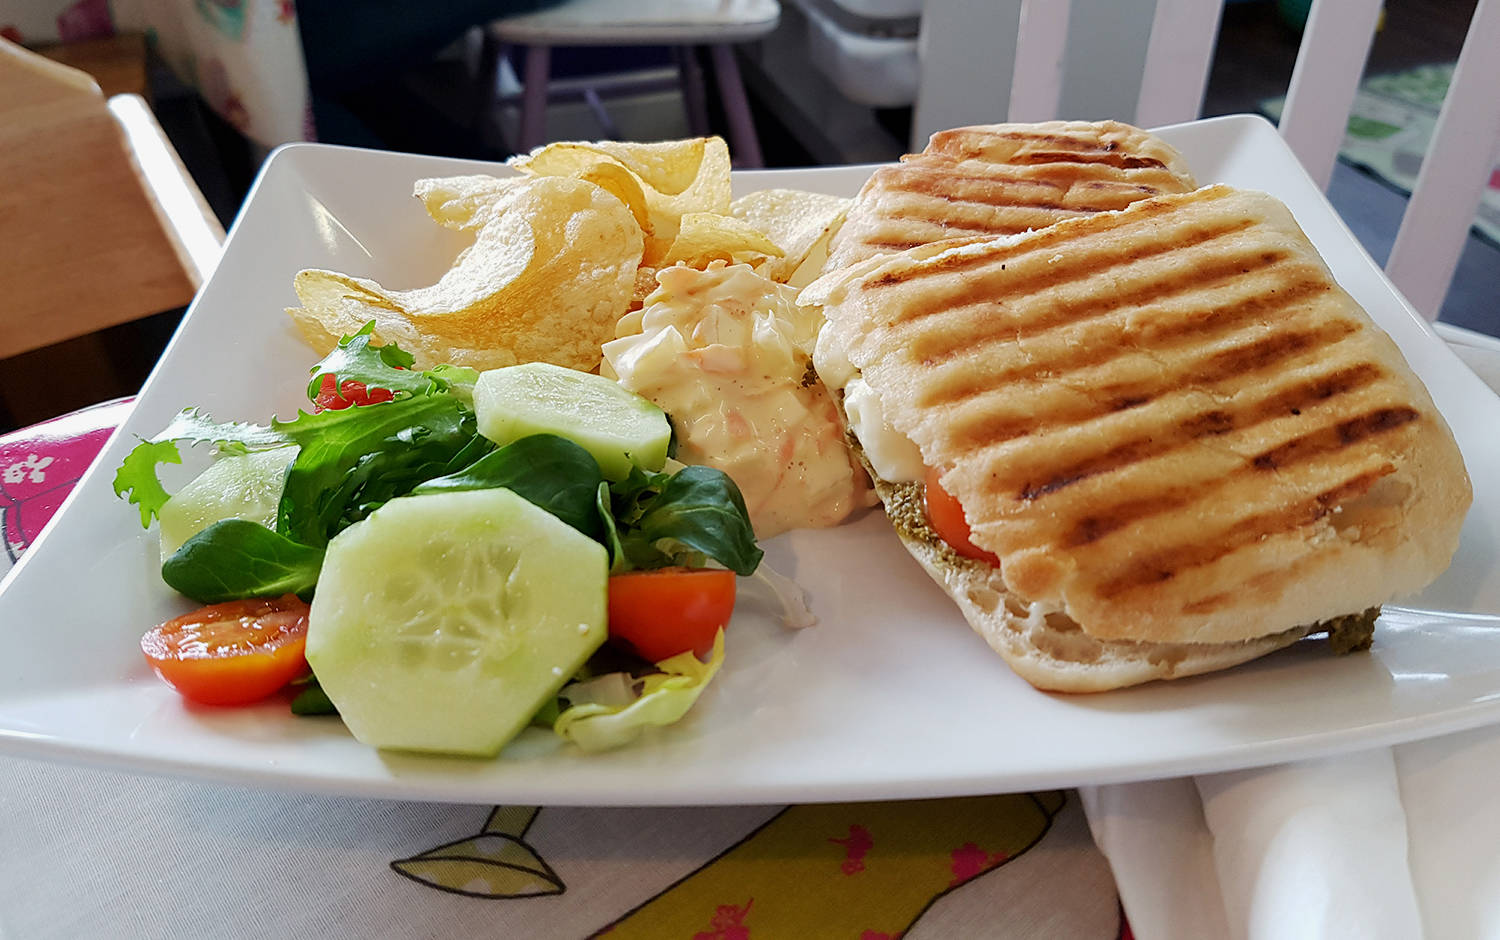 Panini at Keepers cafe